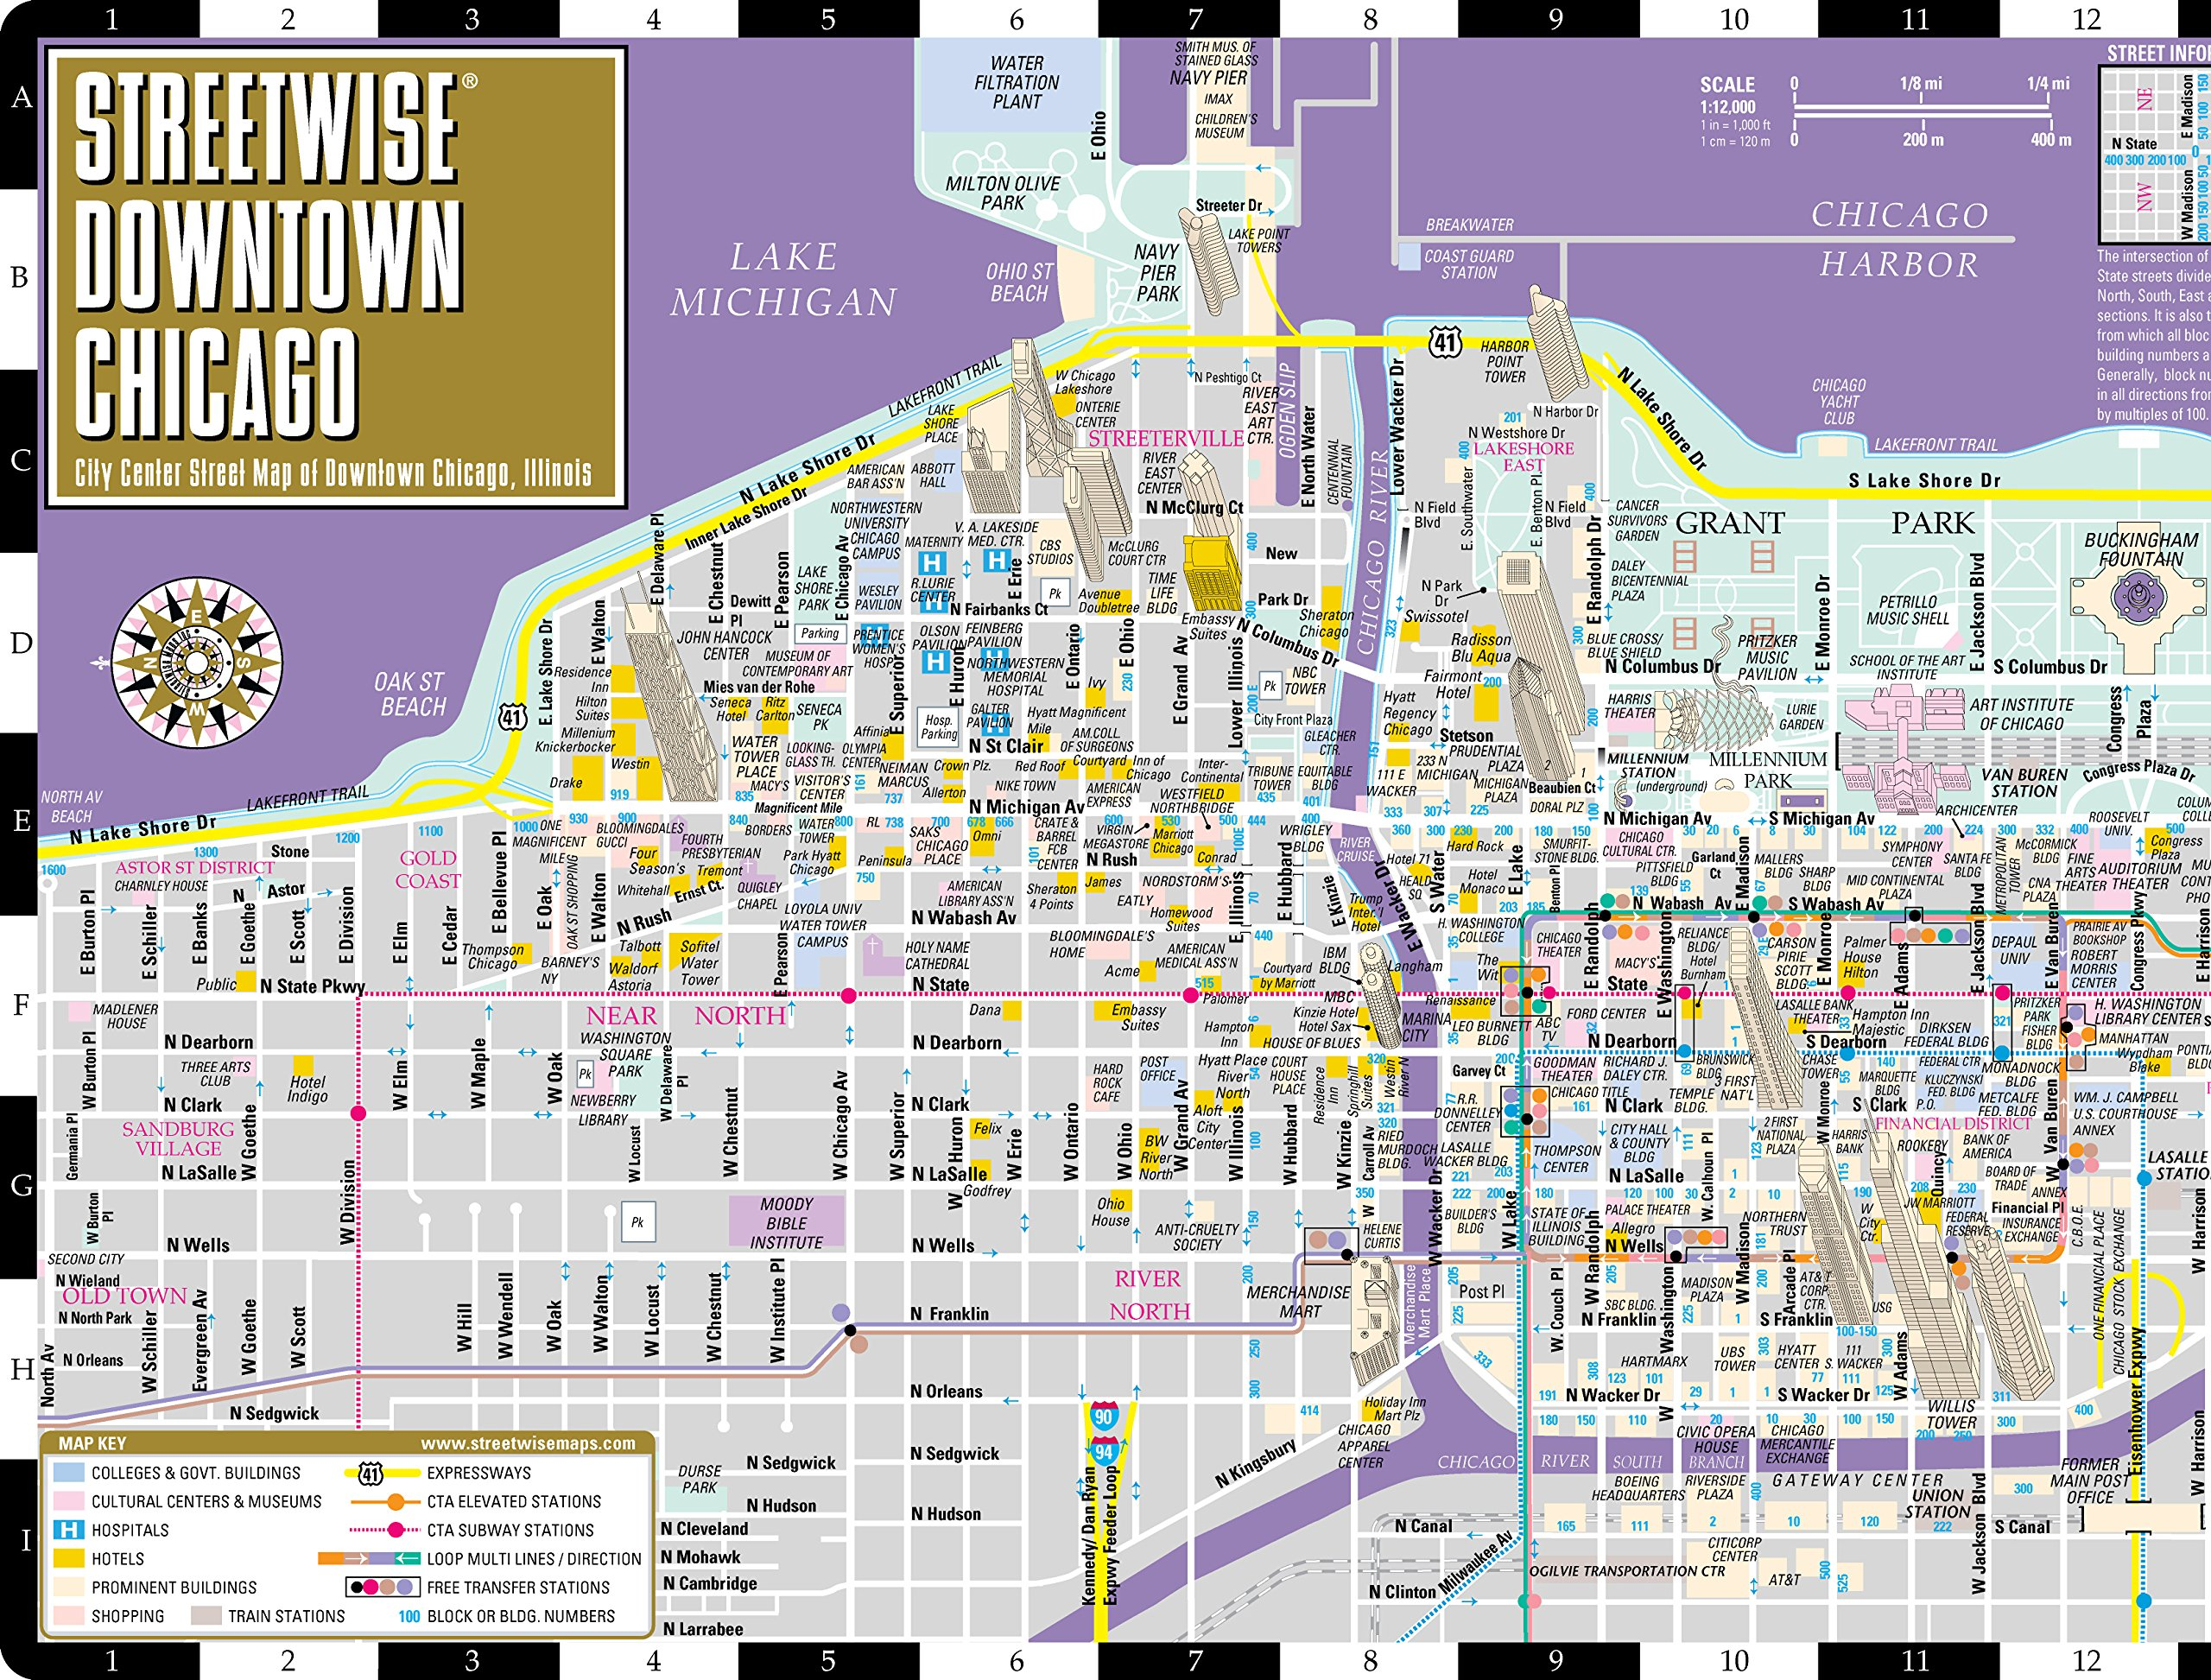 Streetwise Downtown Chicago Map Laminated Street Map of Downtown